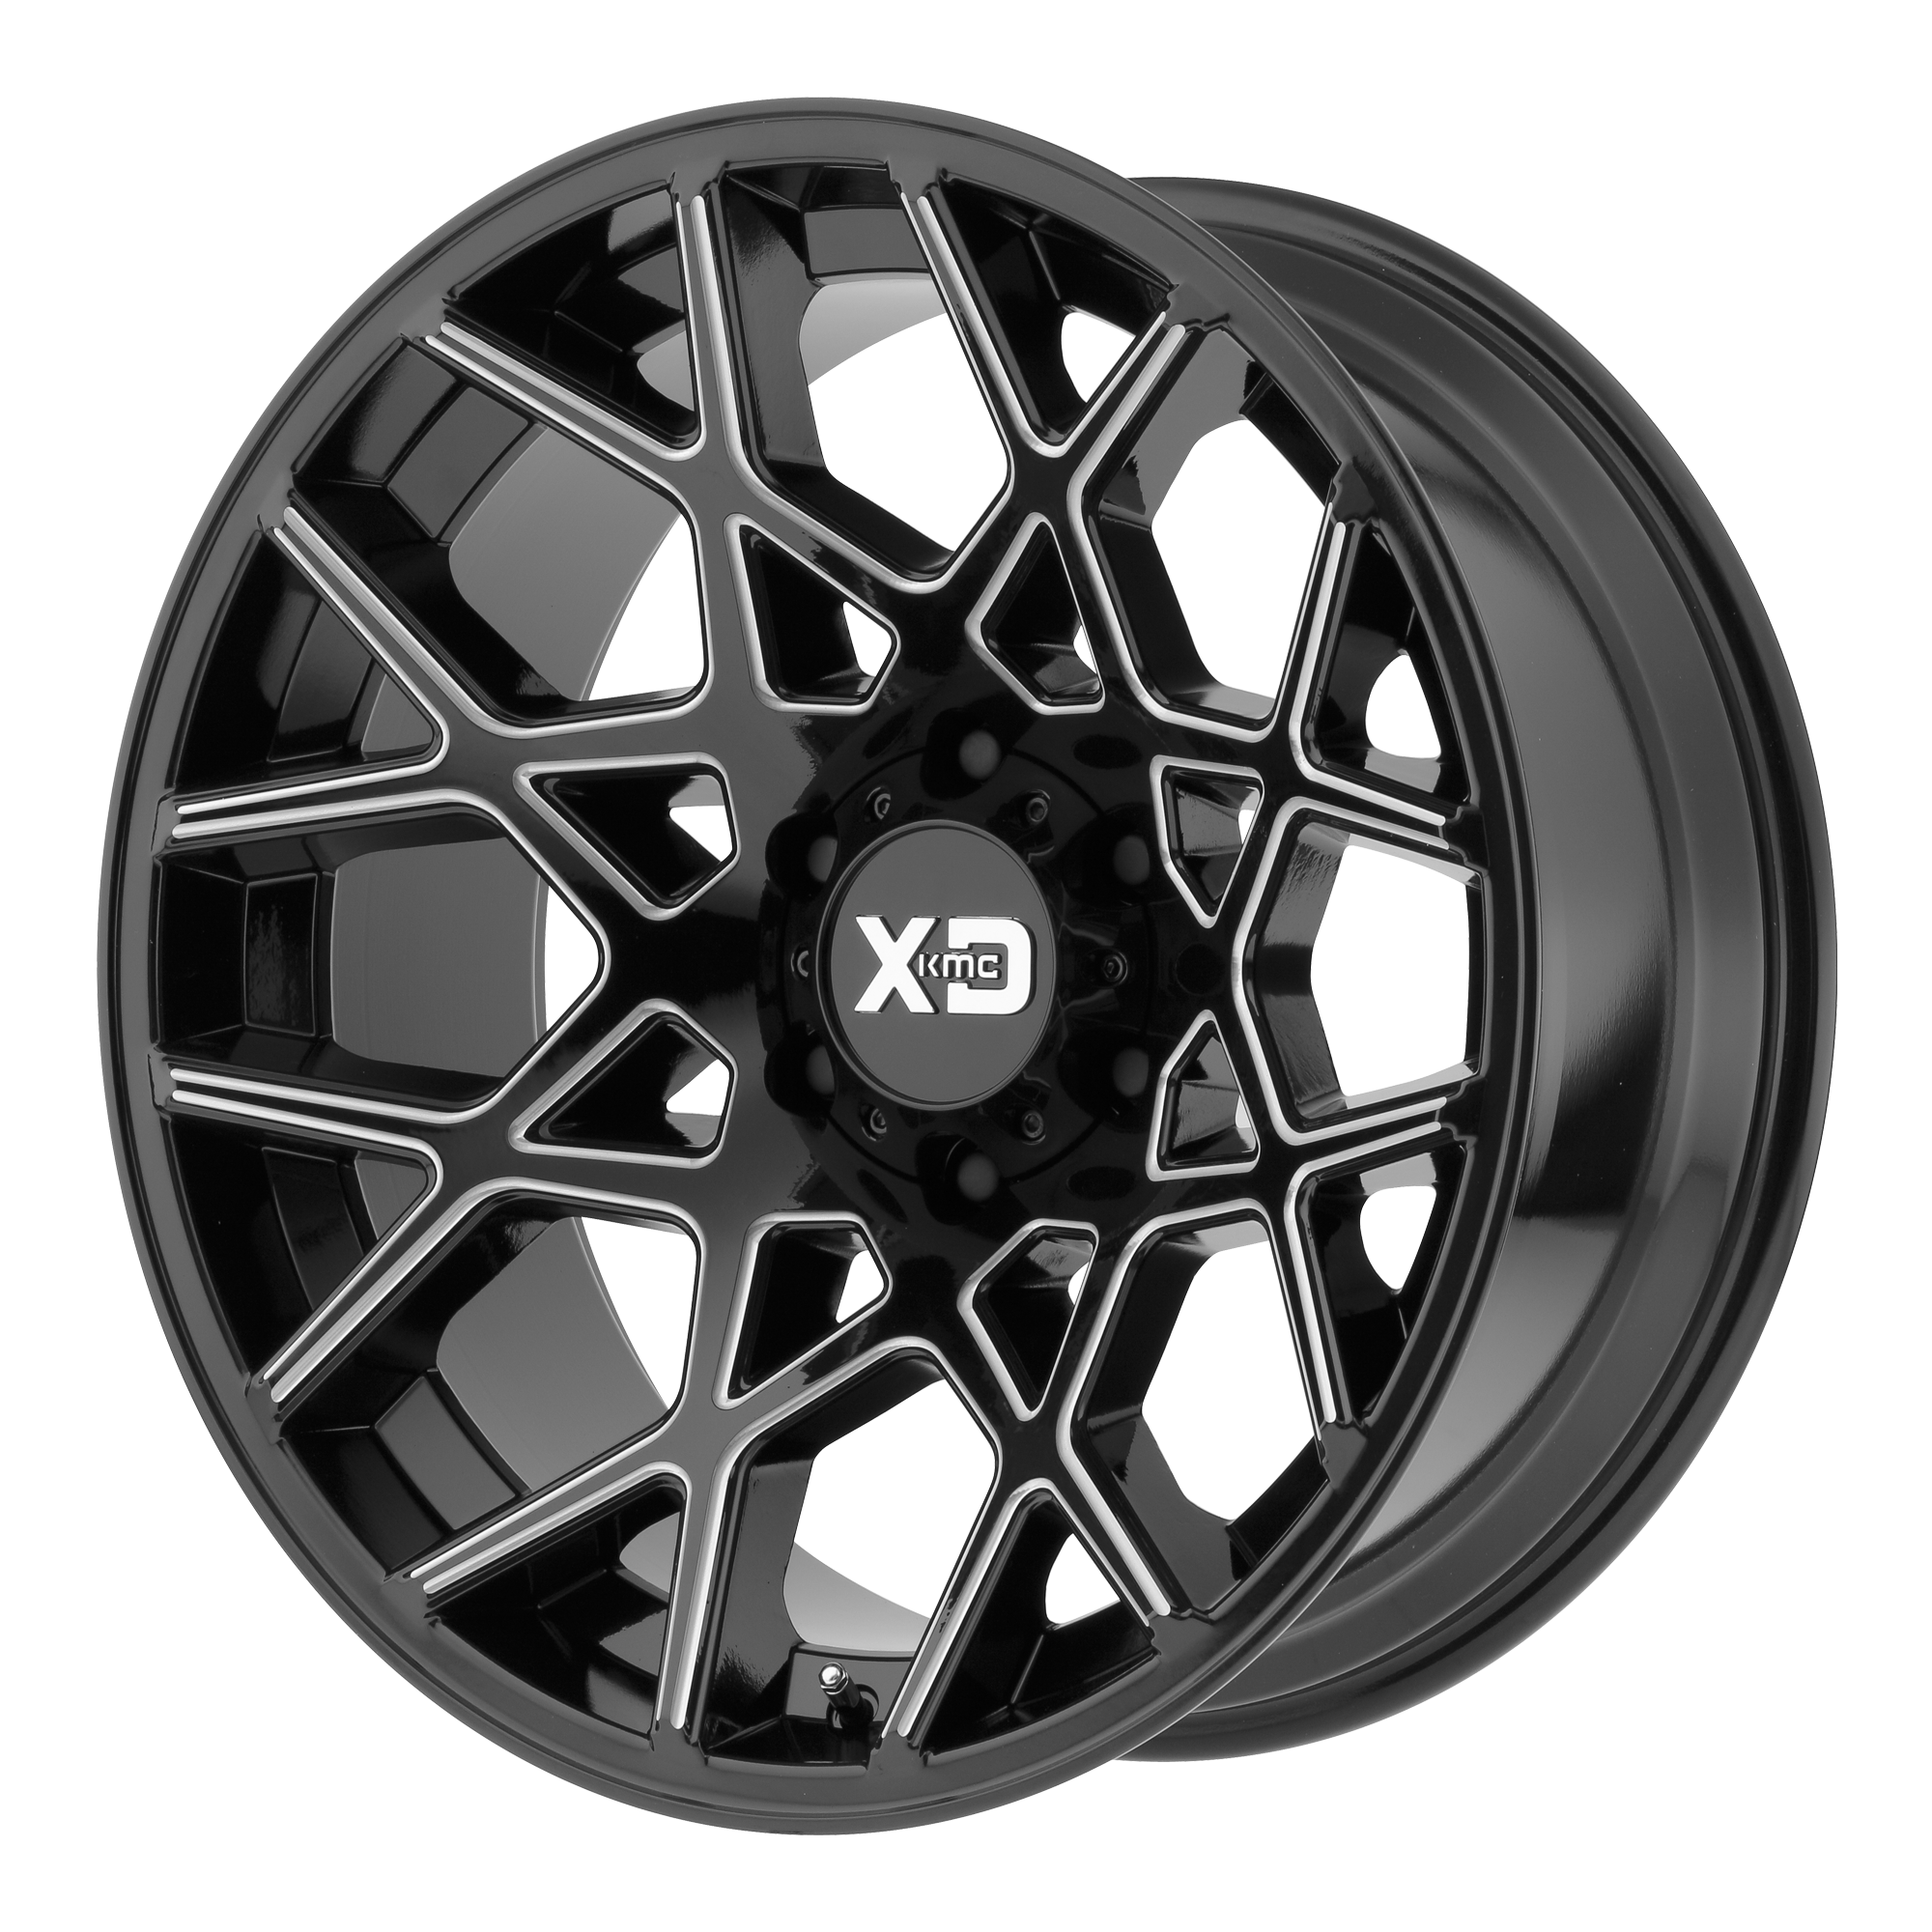 XD Series XD831 Wheels